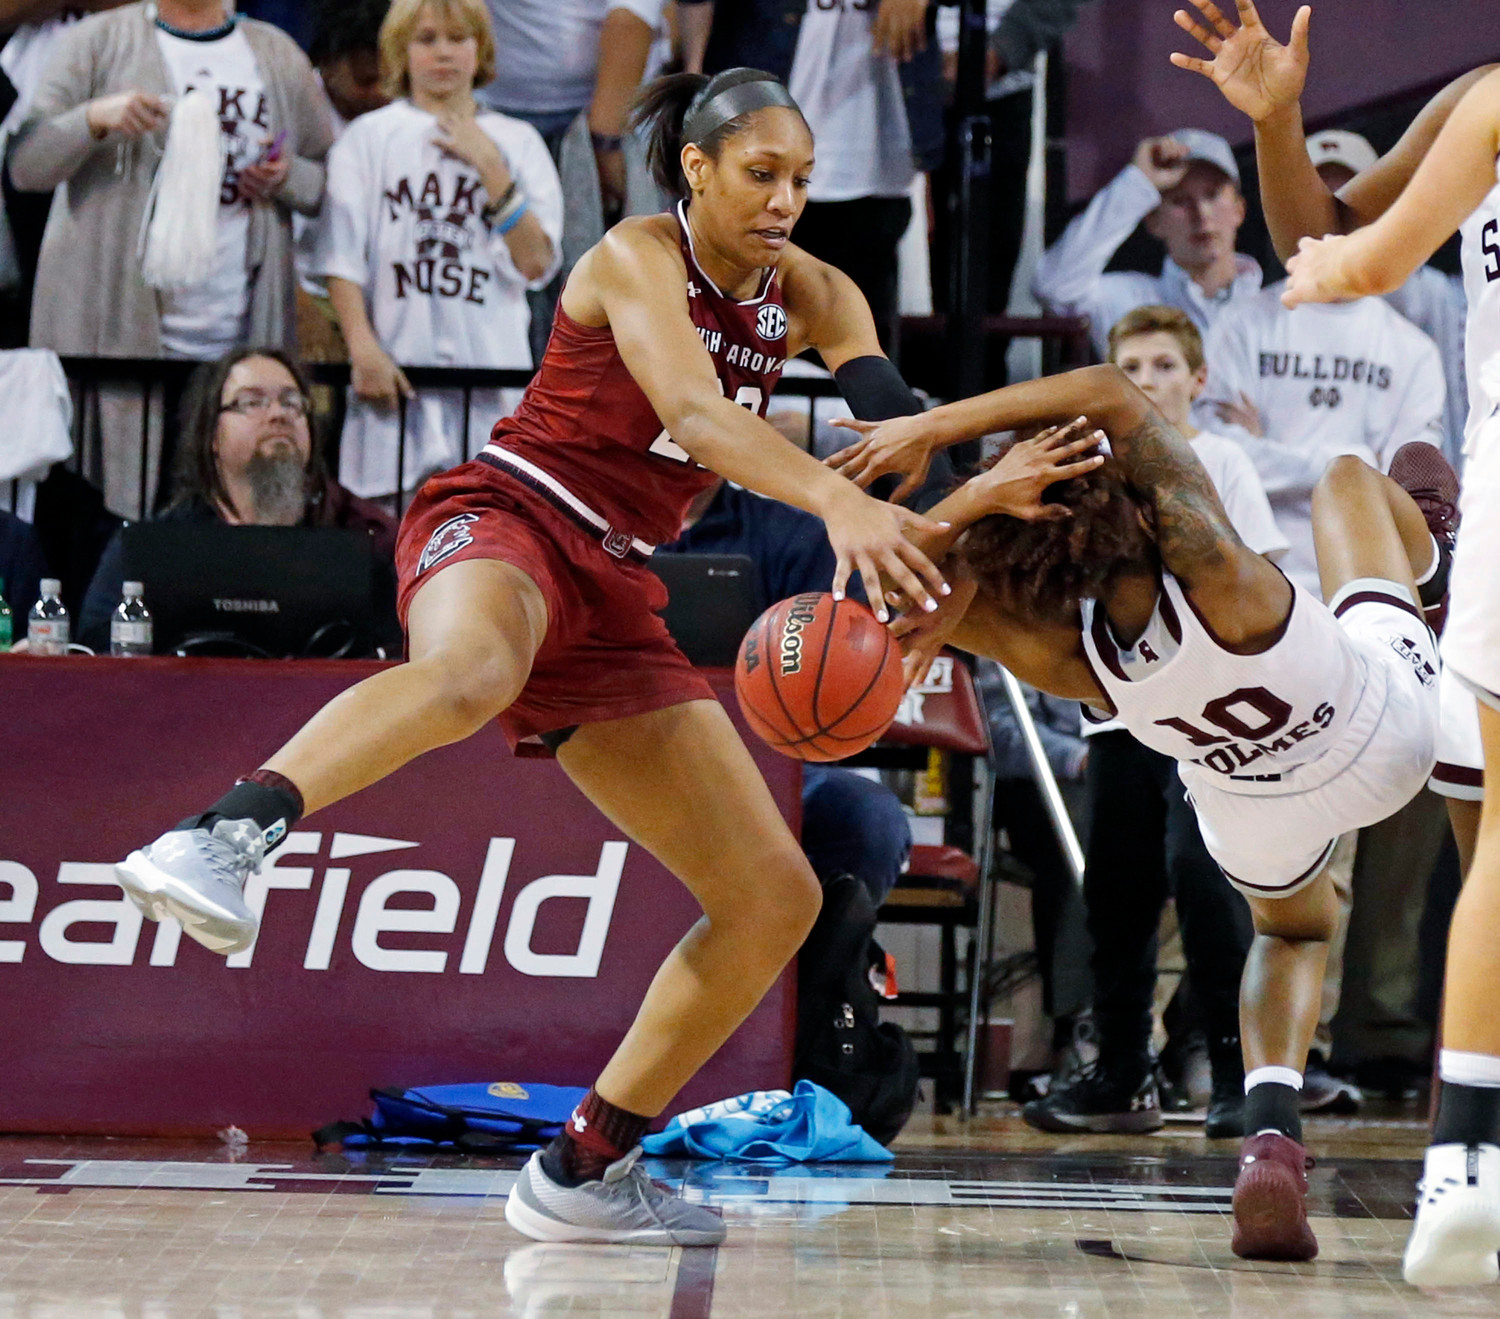 South Carolina forward A'ja Wilson (22) pulls away a rebound from Mississippi State guard Jazzmun Holmes (10) during the Bulldogs' 67-53 victory on Monday in Starkville, Mississippi.